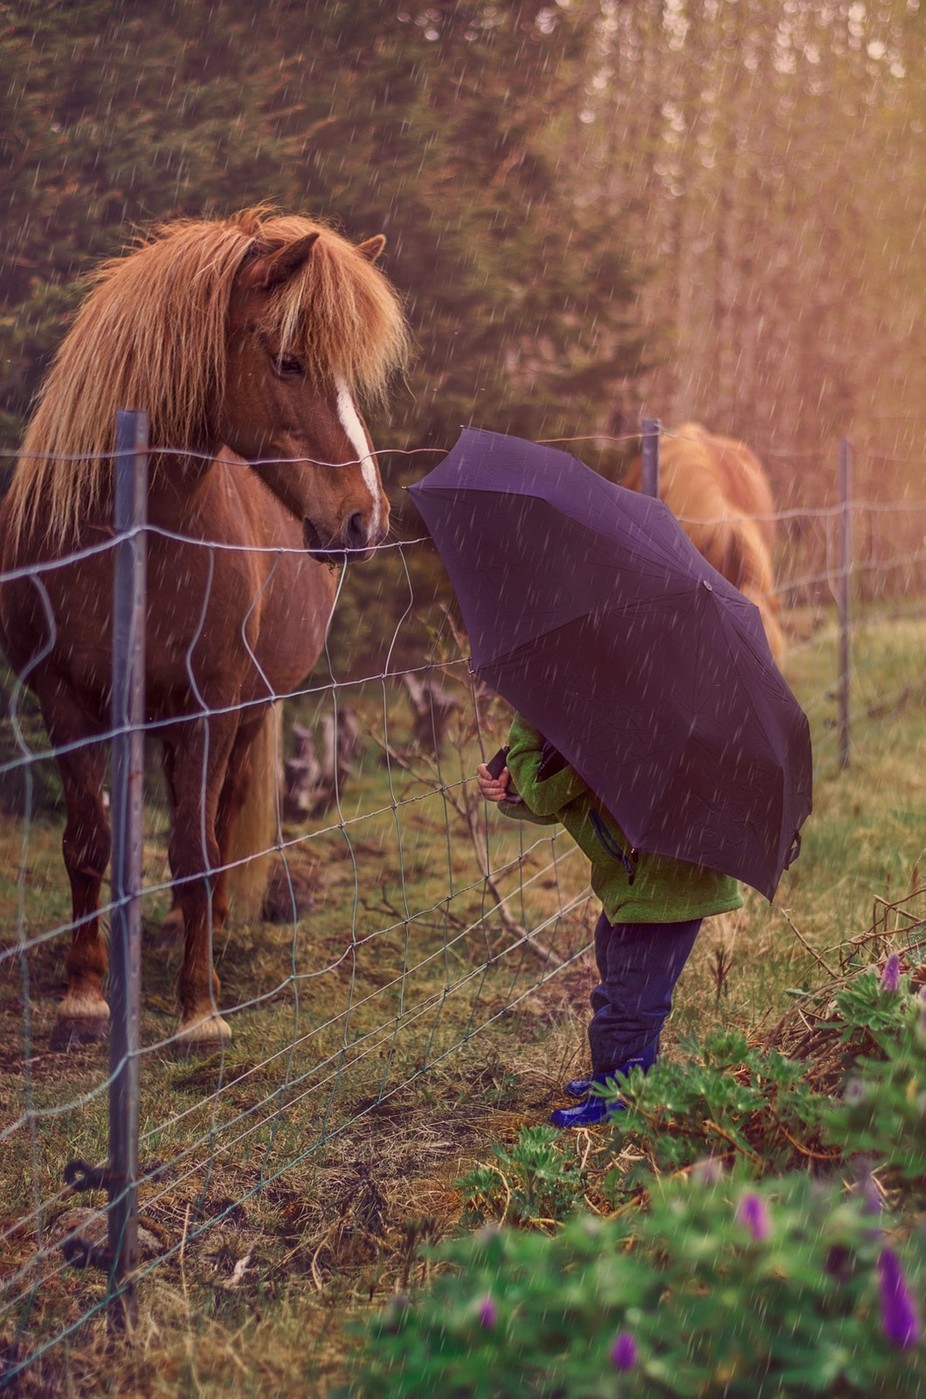 Horses and humans  by IrisBergmann - Fences Photo Contest